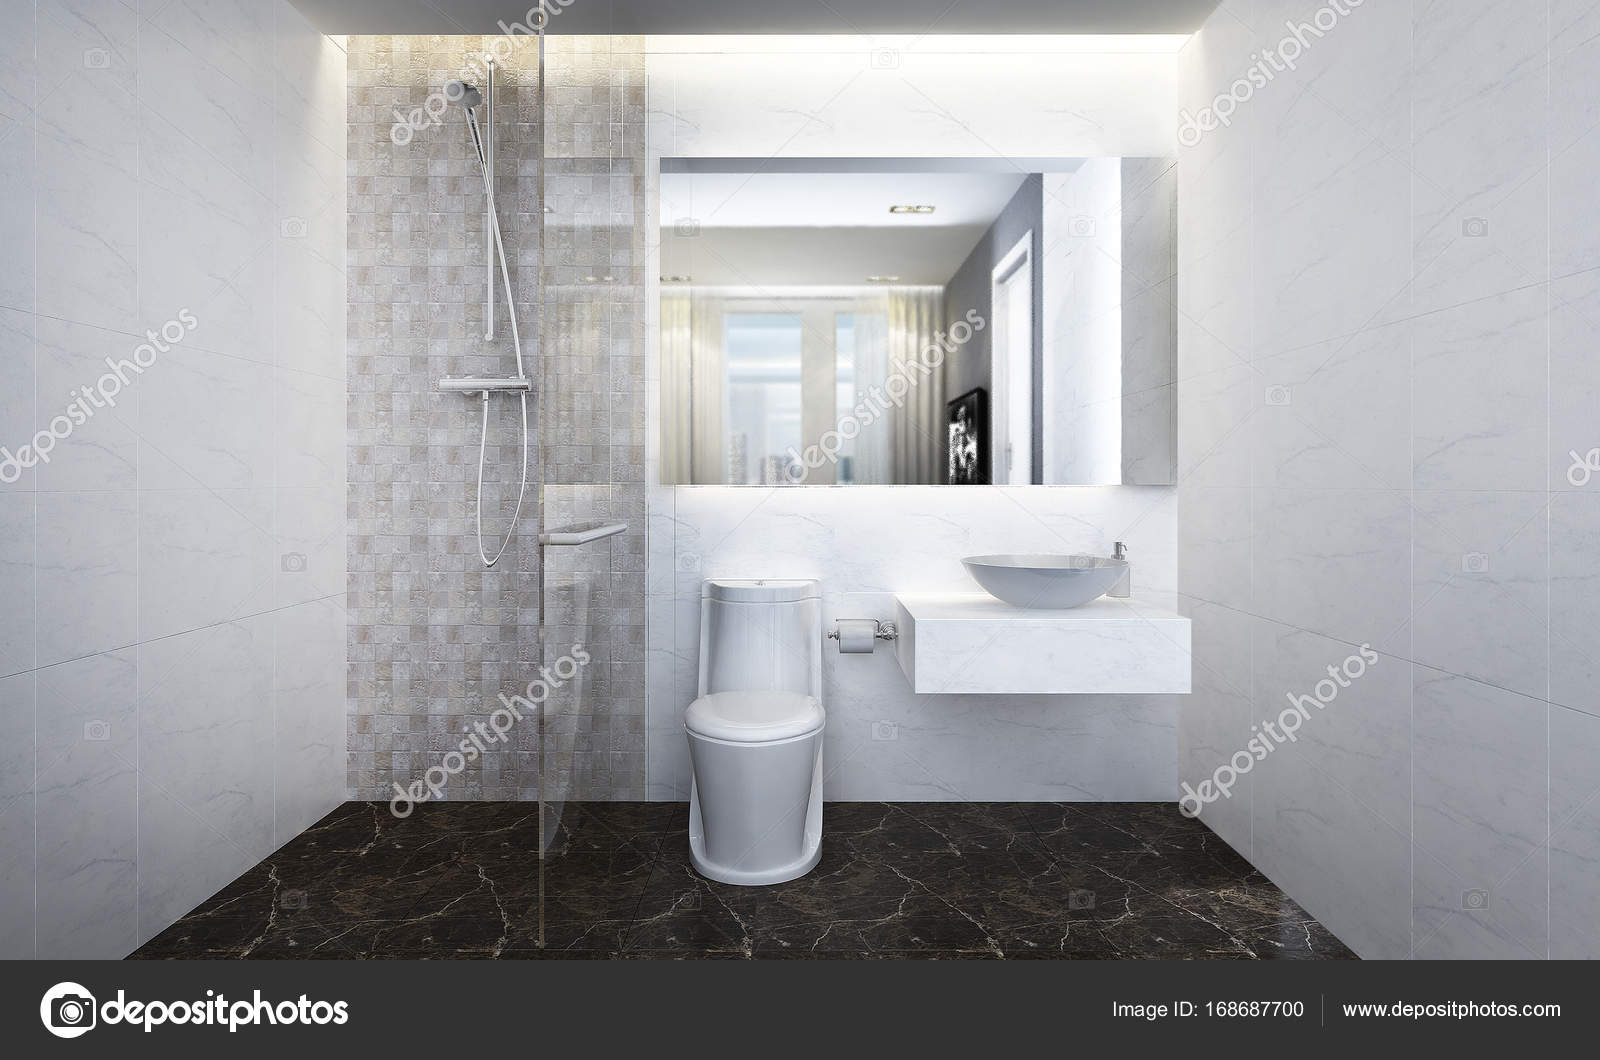 Innenarchitektur Badezimmer Minimale Innenarchitektur Im Bad Und Wc Stockfoto